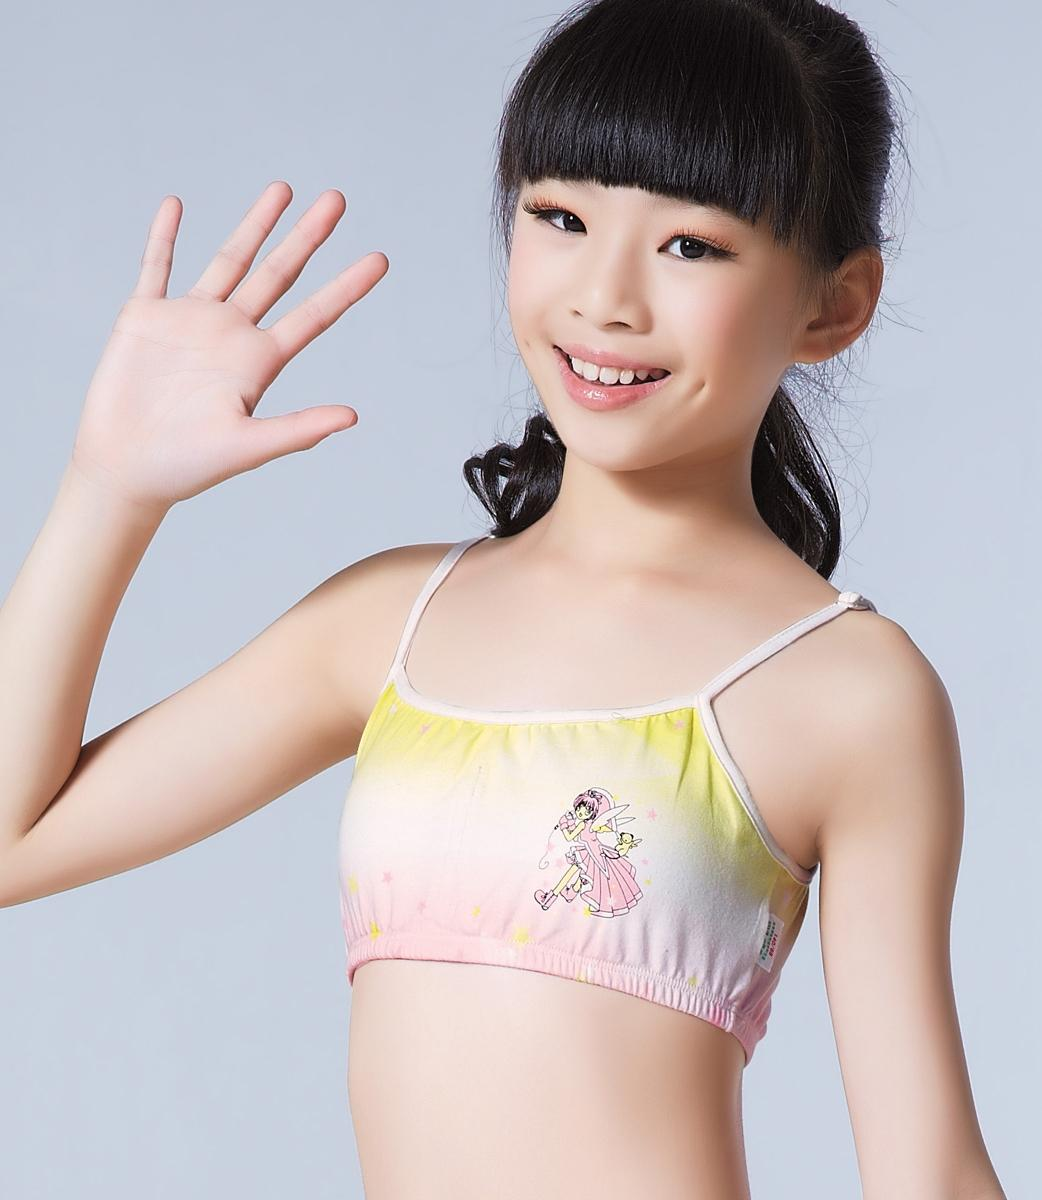 2018 Young Girl Spaghetti Strap Underwear Girls Tube Top ... - photo#12